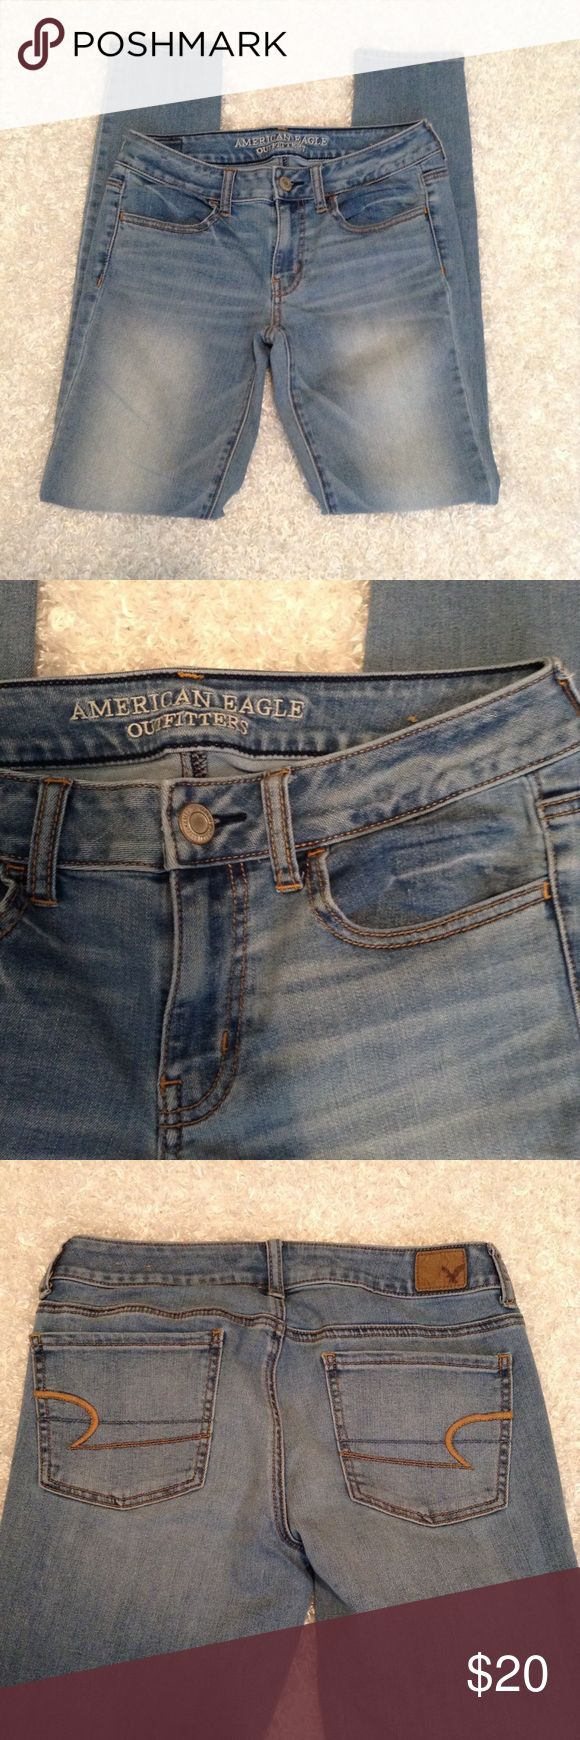 American Eagle Jegging light wash jeans 6 long Worn a few times, soft and comfy, no flaws, no trades, open to offers, discount on bundles ❤️ American Eagle Outfitters Jeans Skinny